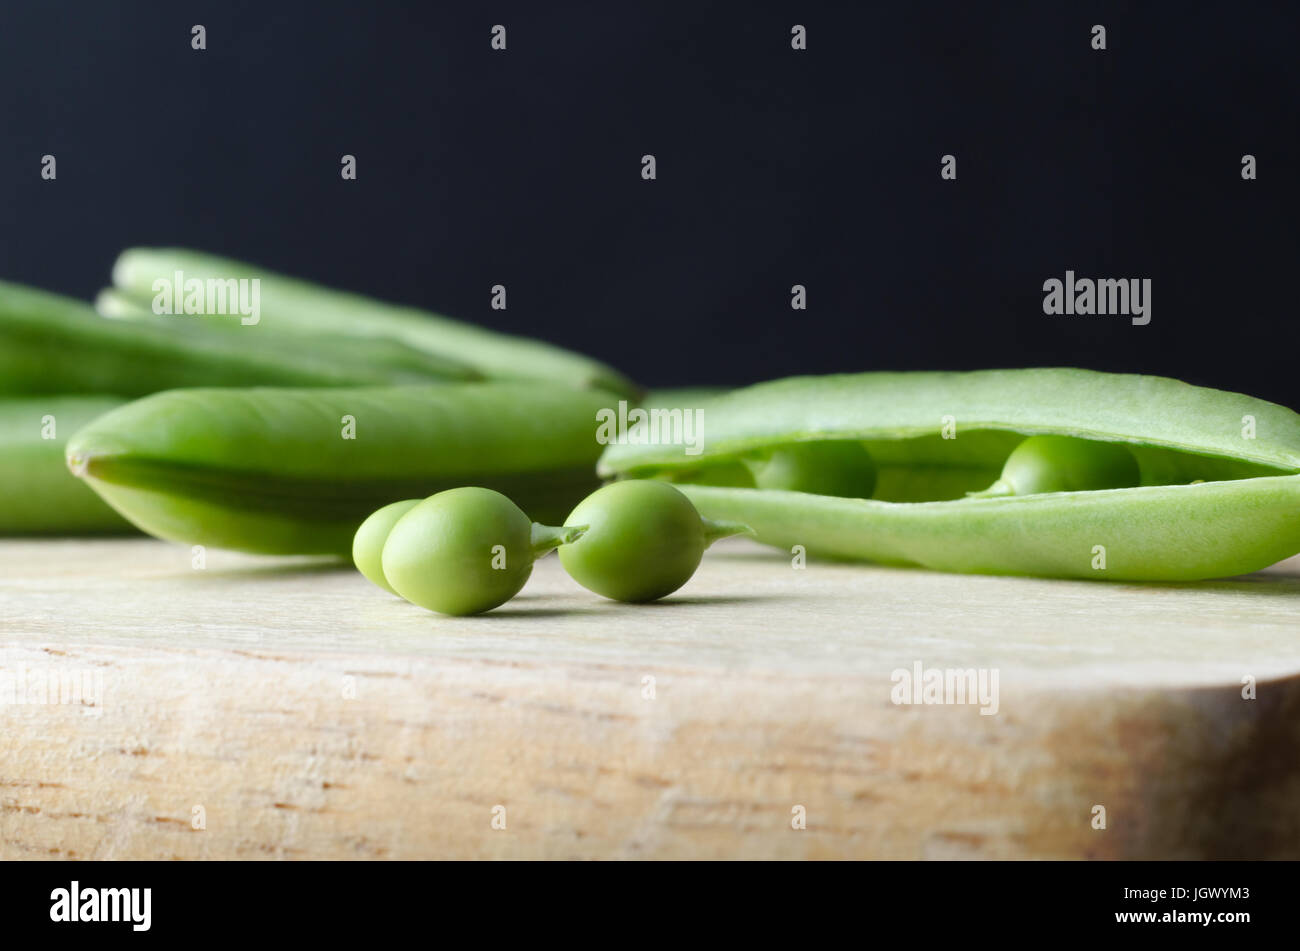 Close up (macro) of three peas with stalks intact on wooden chopping board. The opened pod from which they were - Stock Image